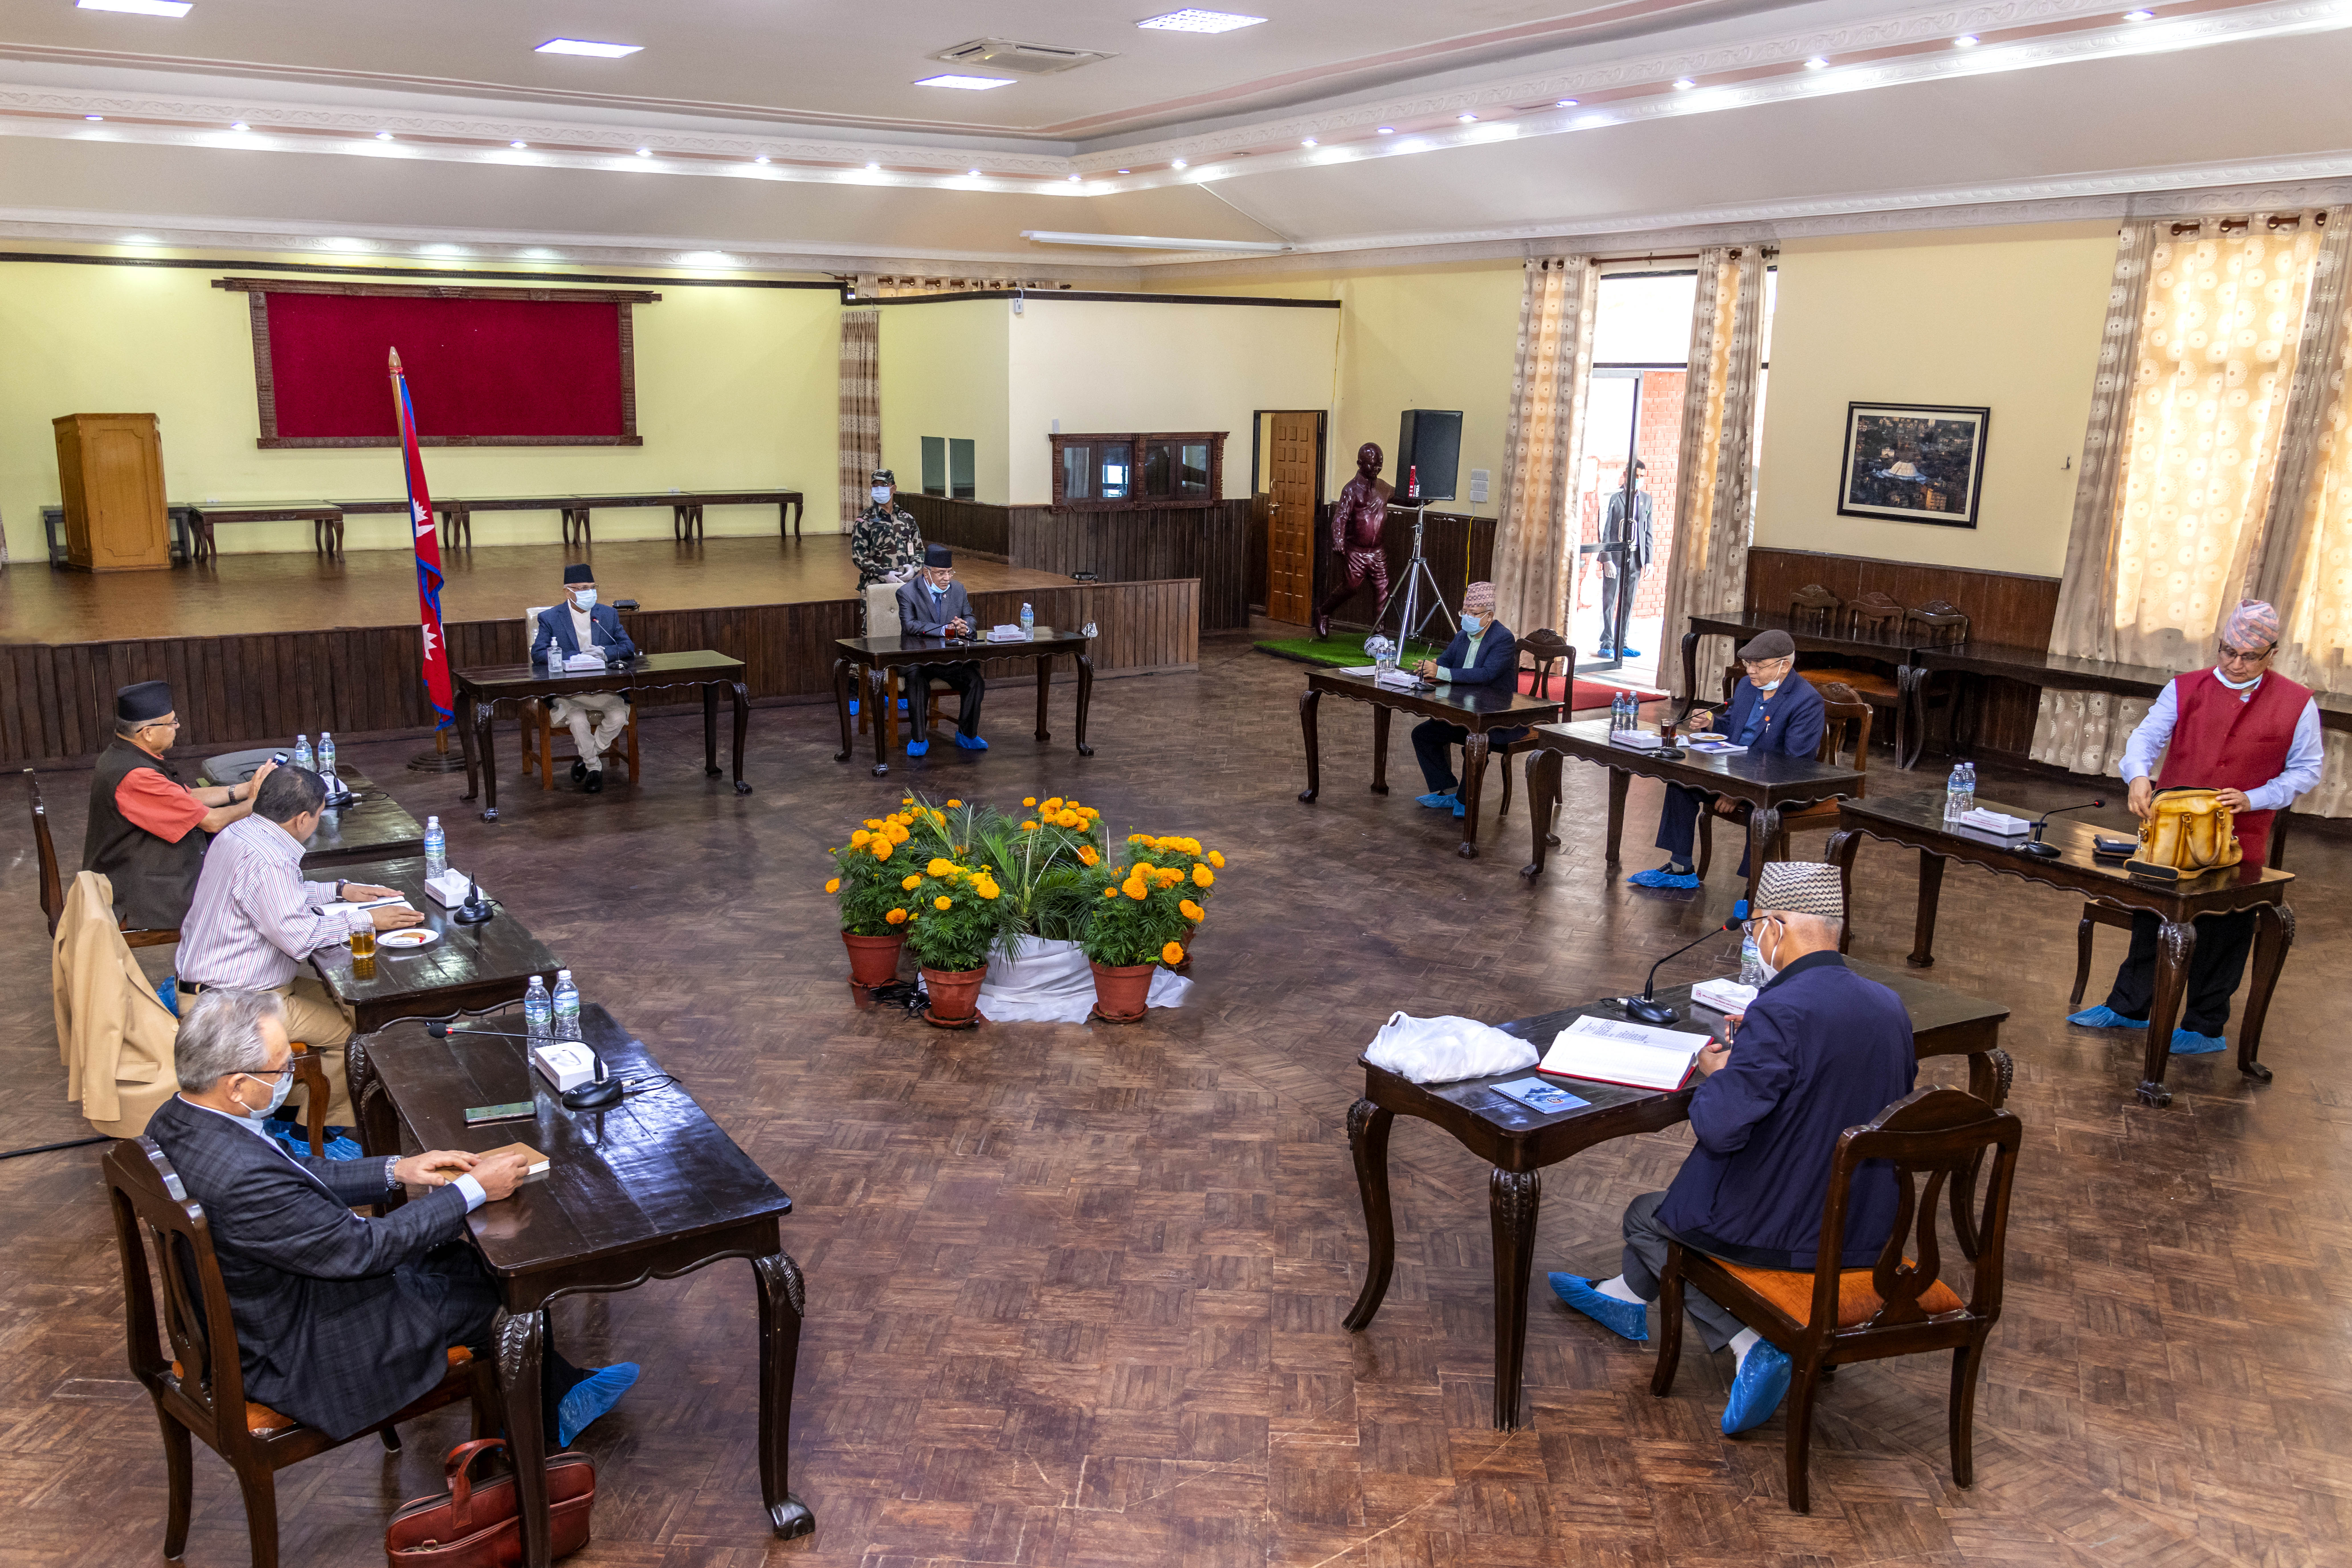 Secretariat meeting of the ruling Nepal Communist Party (NCP) underway at the Prime Minister's official residence in Baluwatar, Kathmandu, on Saturday, June 20, 2020. Photo Courtesy: Rajan Kafle/Prime Minister's Secretariat